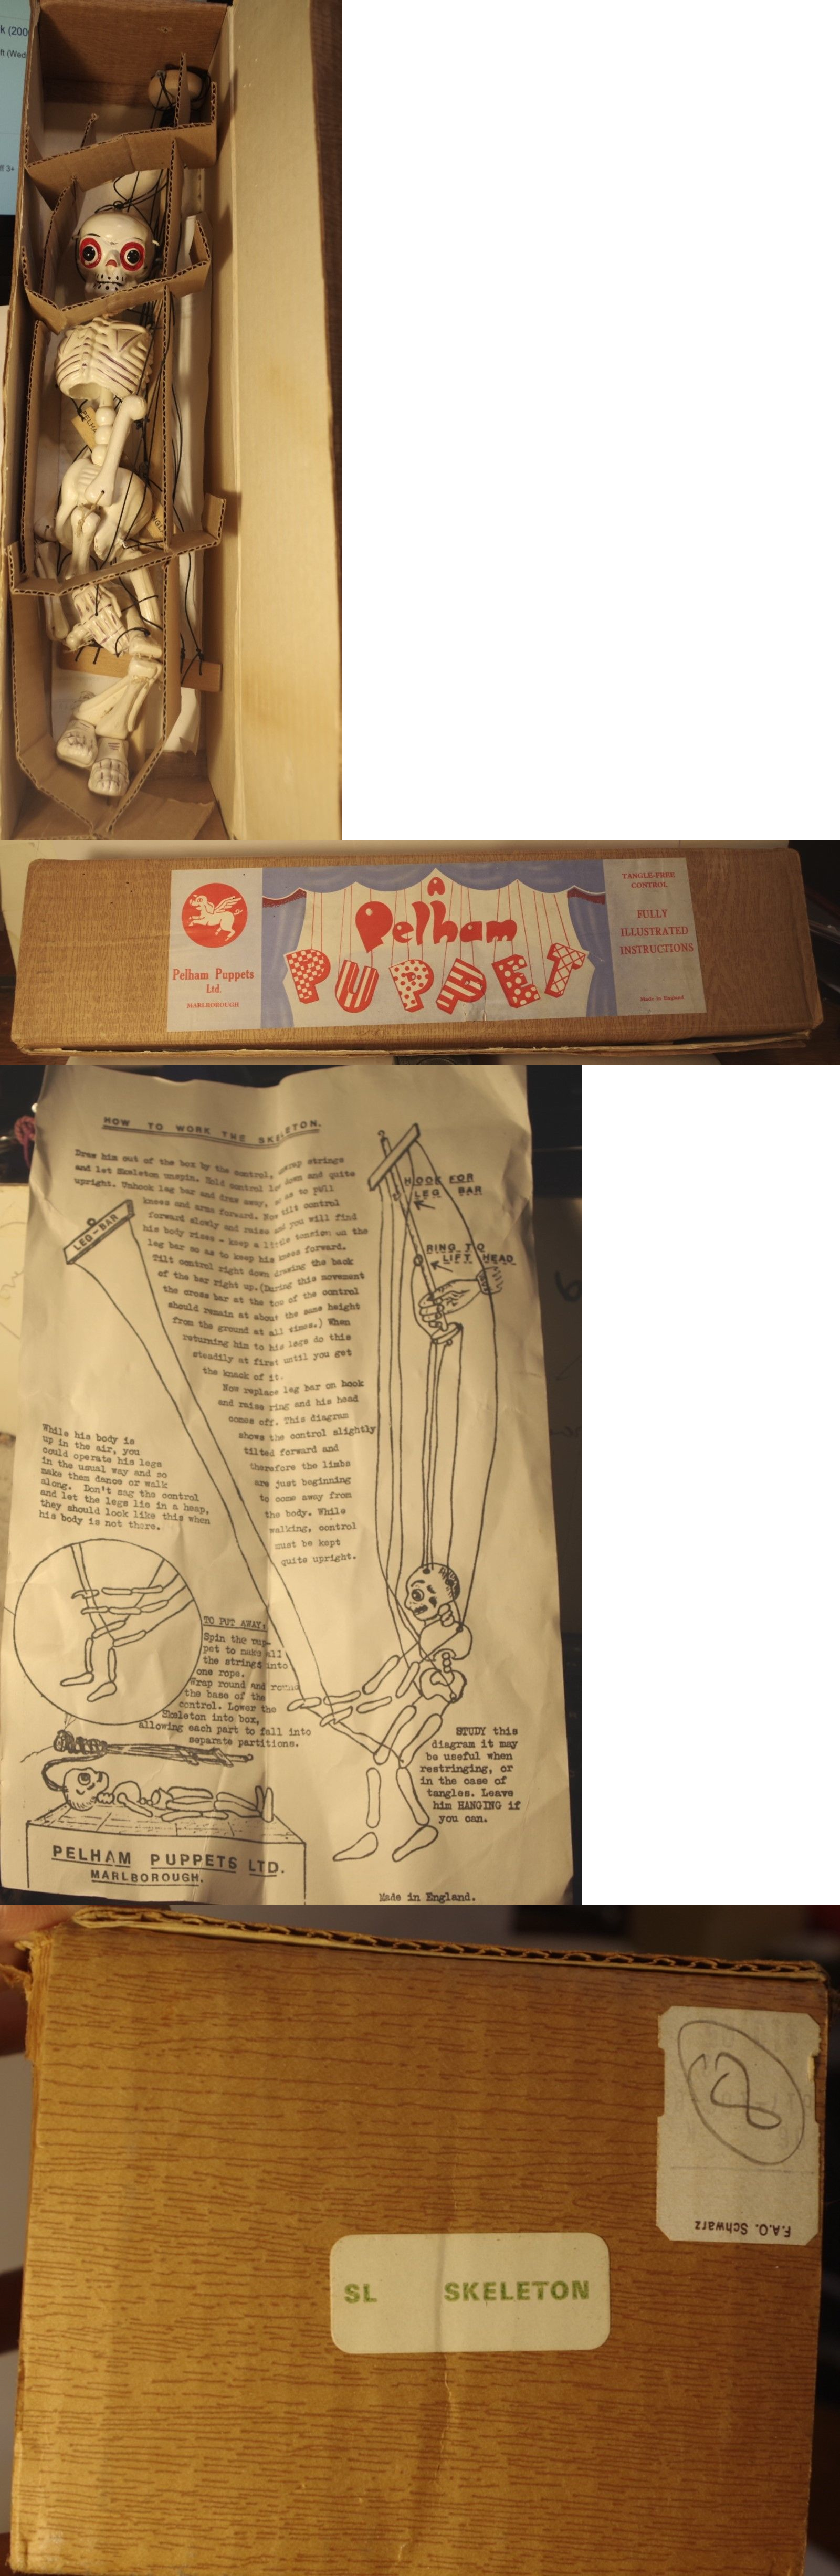 1950 toys images  Windup Toys  Vintage  S Pelham Skeleton Puppet With Box